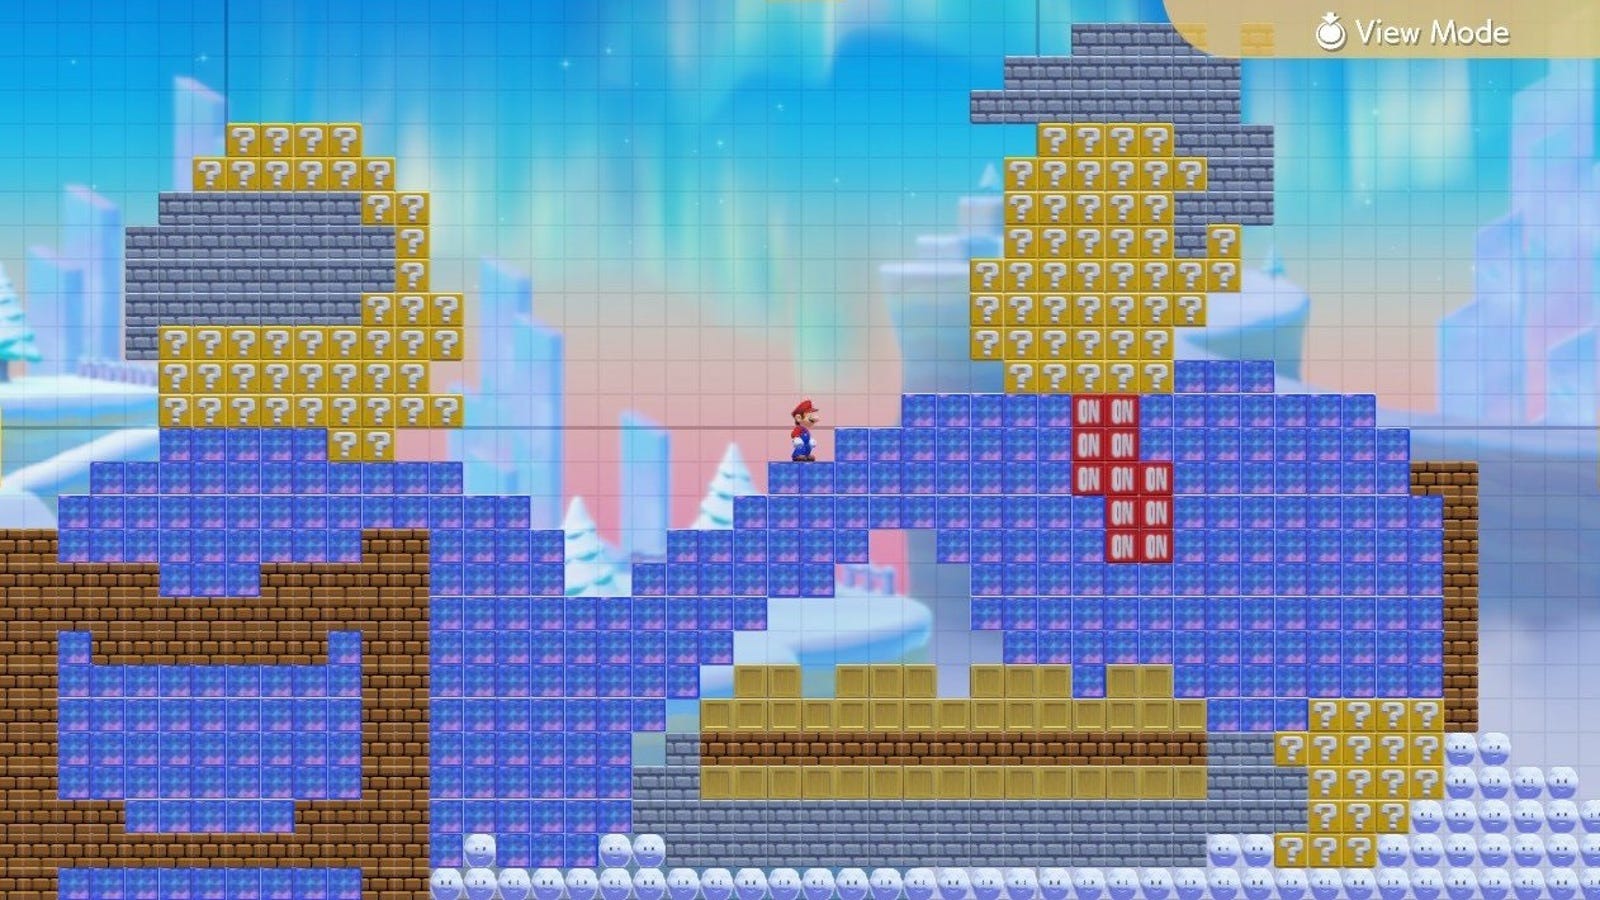 """Steamed Hams"" is now a Super Mario Maker 2 level because this meme will outlive us all"